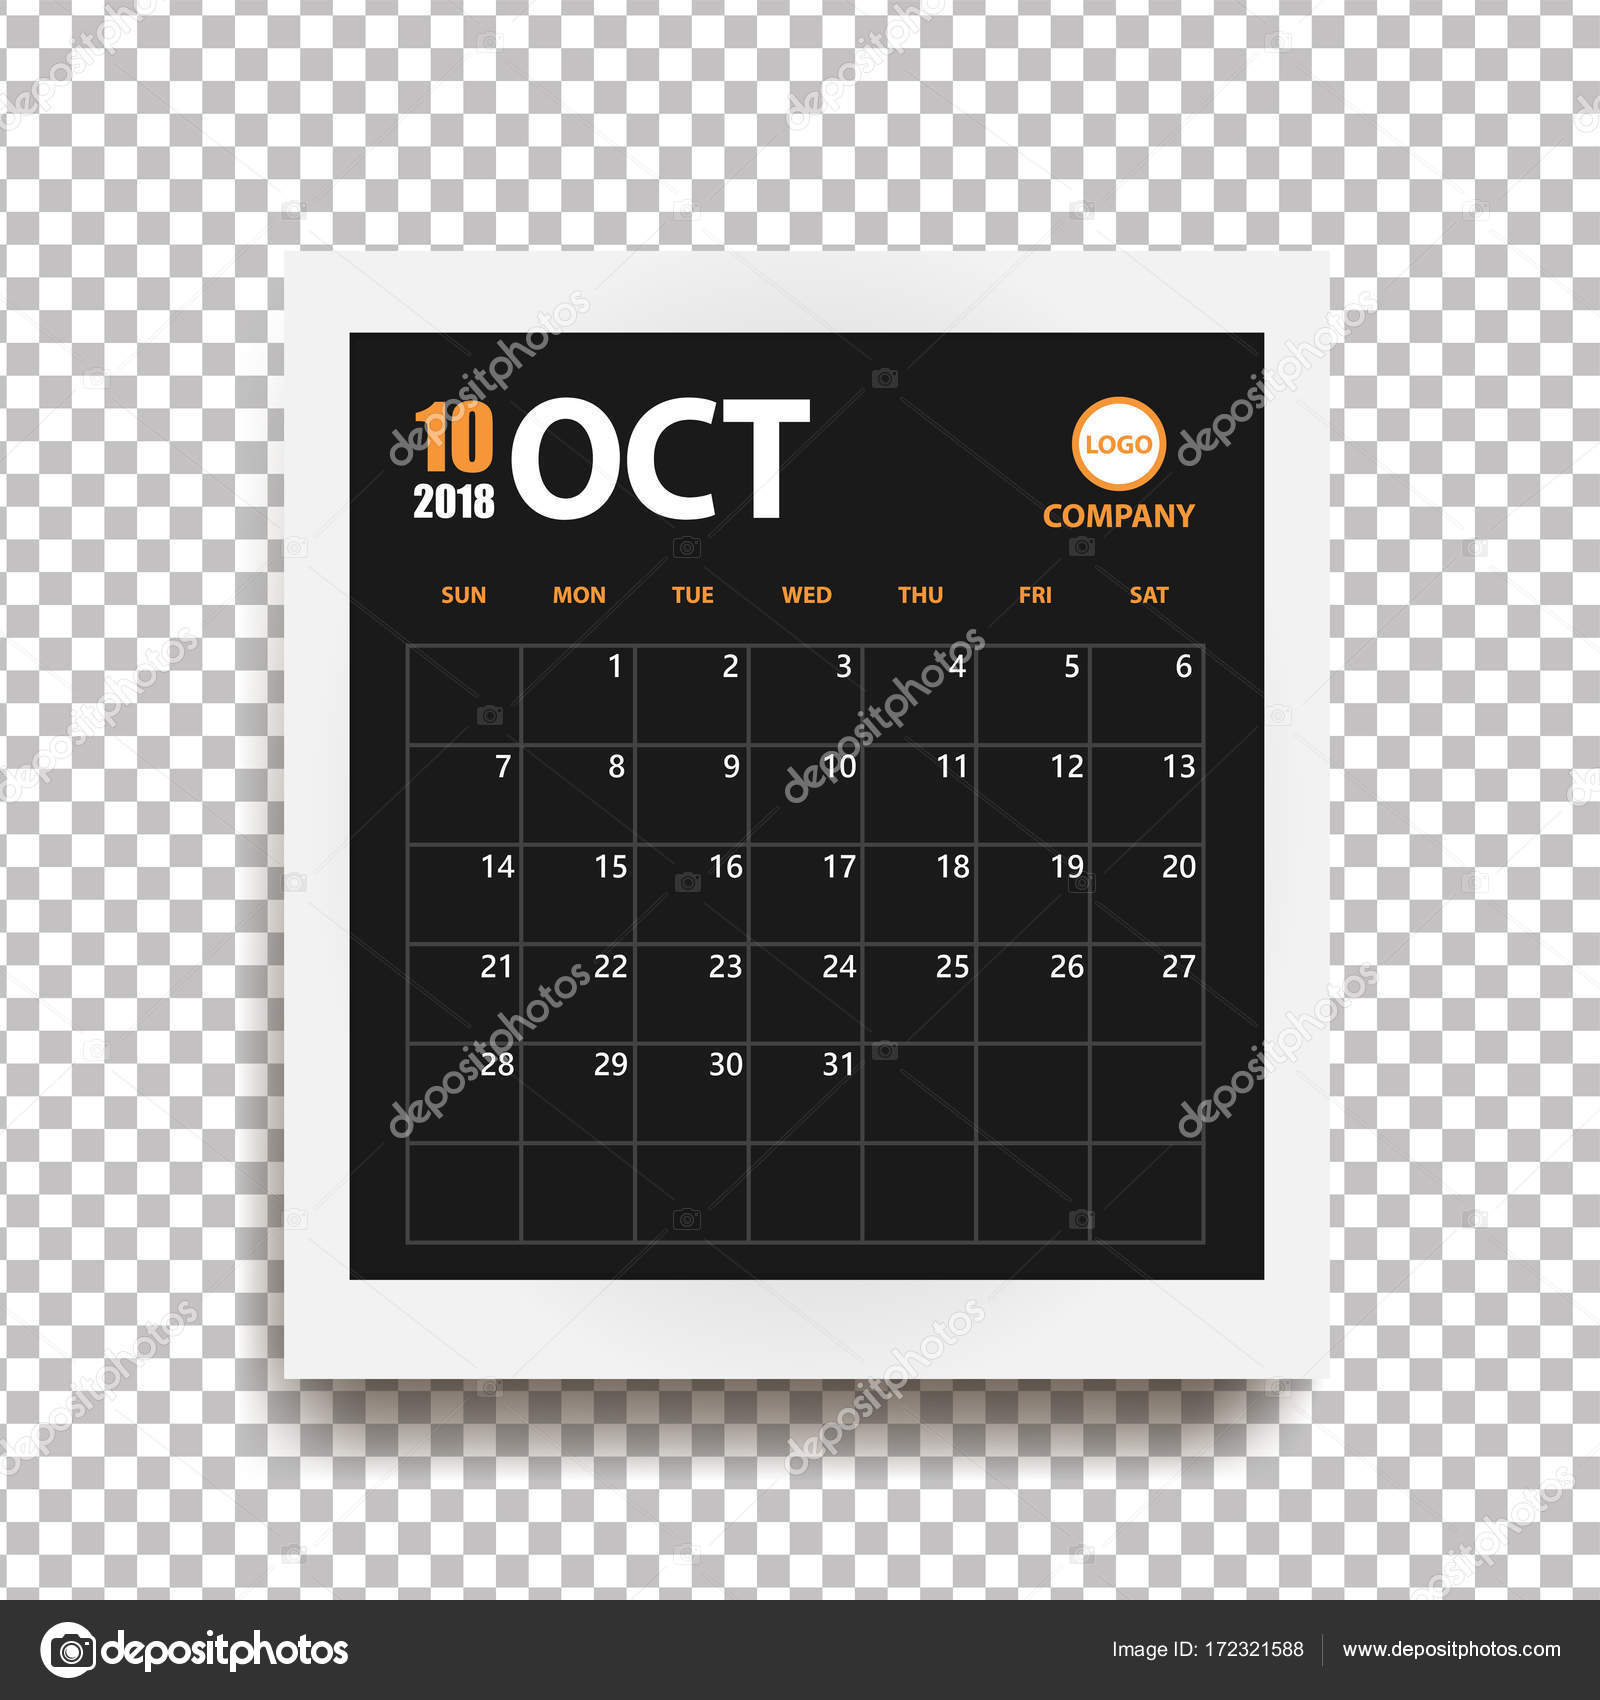 october 2018 calendar in realistic photo frame with shadow isolated on transparent background event planner